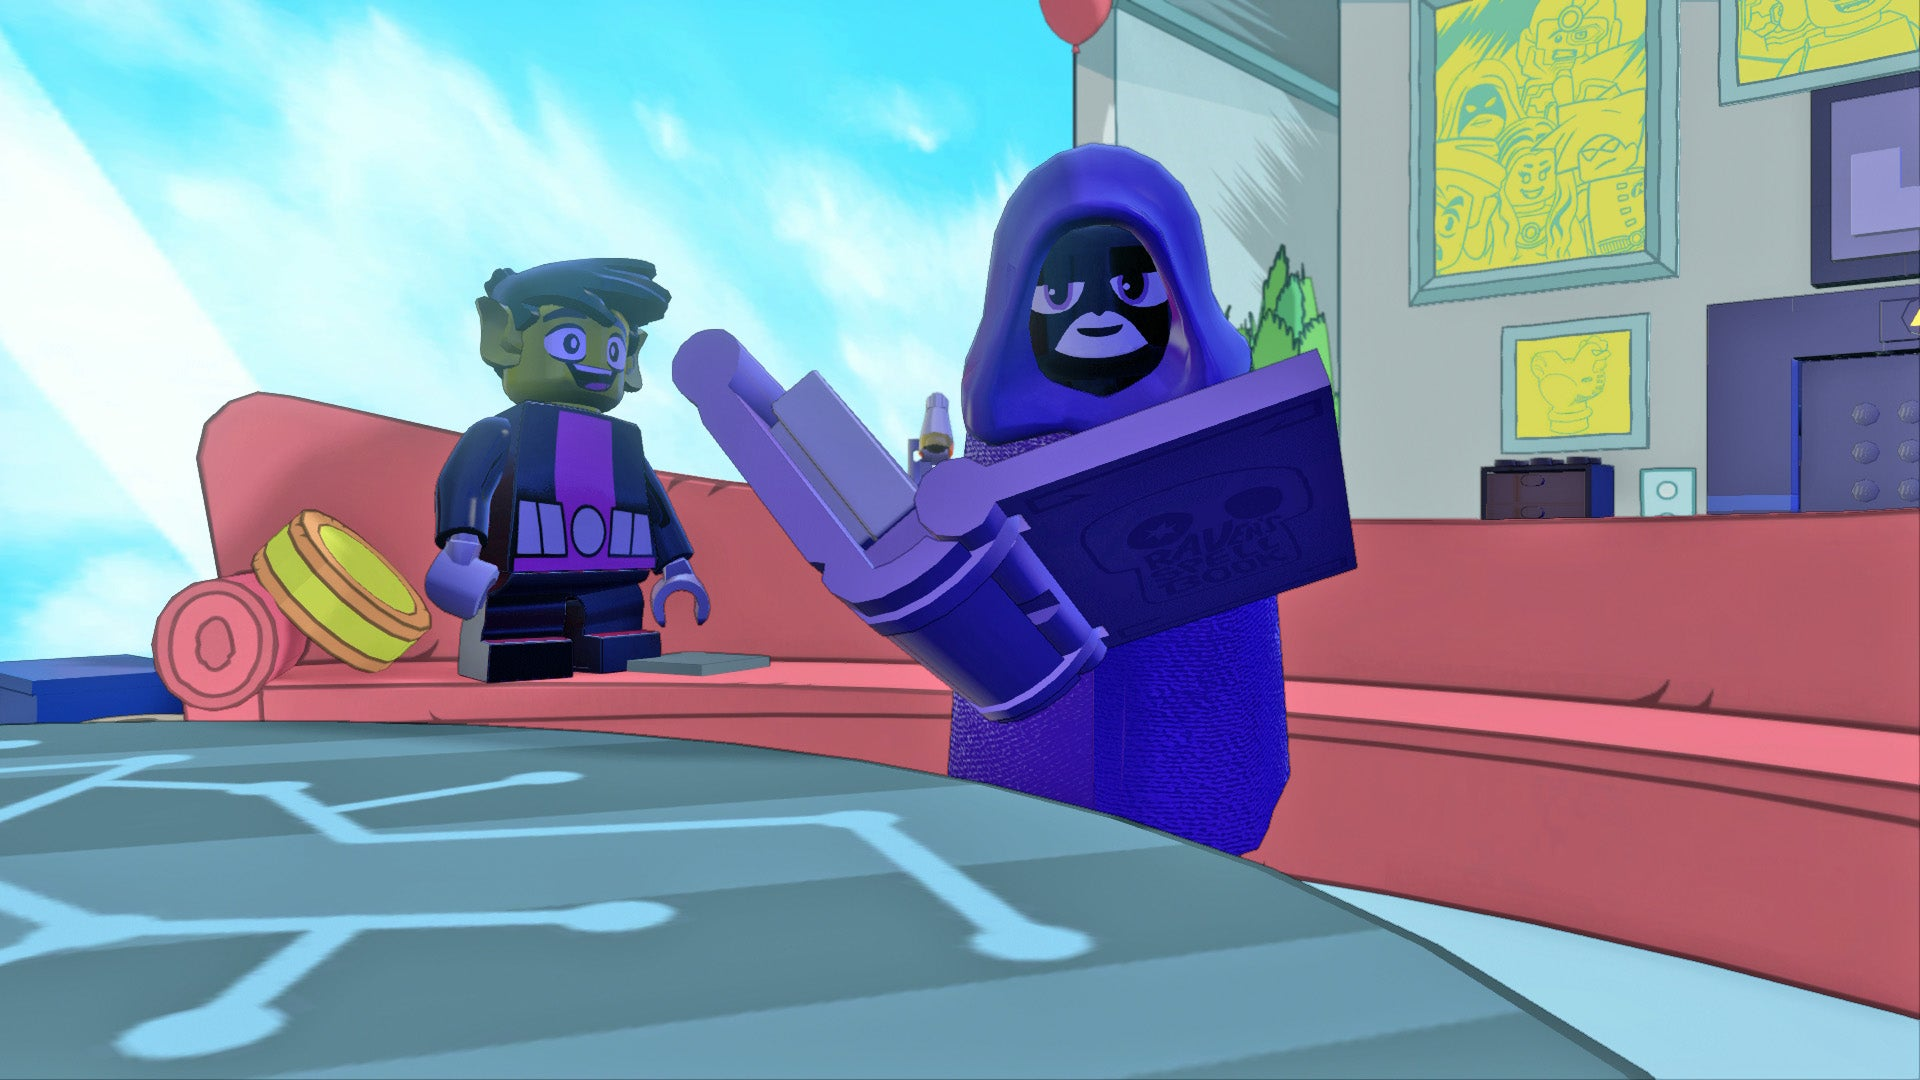 The powerpuff girls and teen titans go come to lego dimensions in teen titans go gets two sets a fun pack featuring starfire who is the fun and a team pack featuring beast boy and his hot magic mama not his actual voltagebd Images